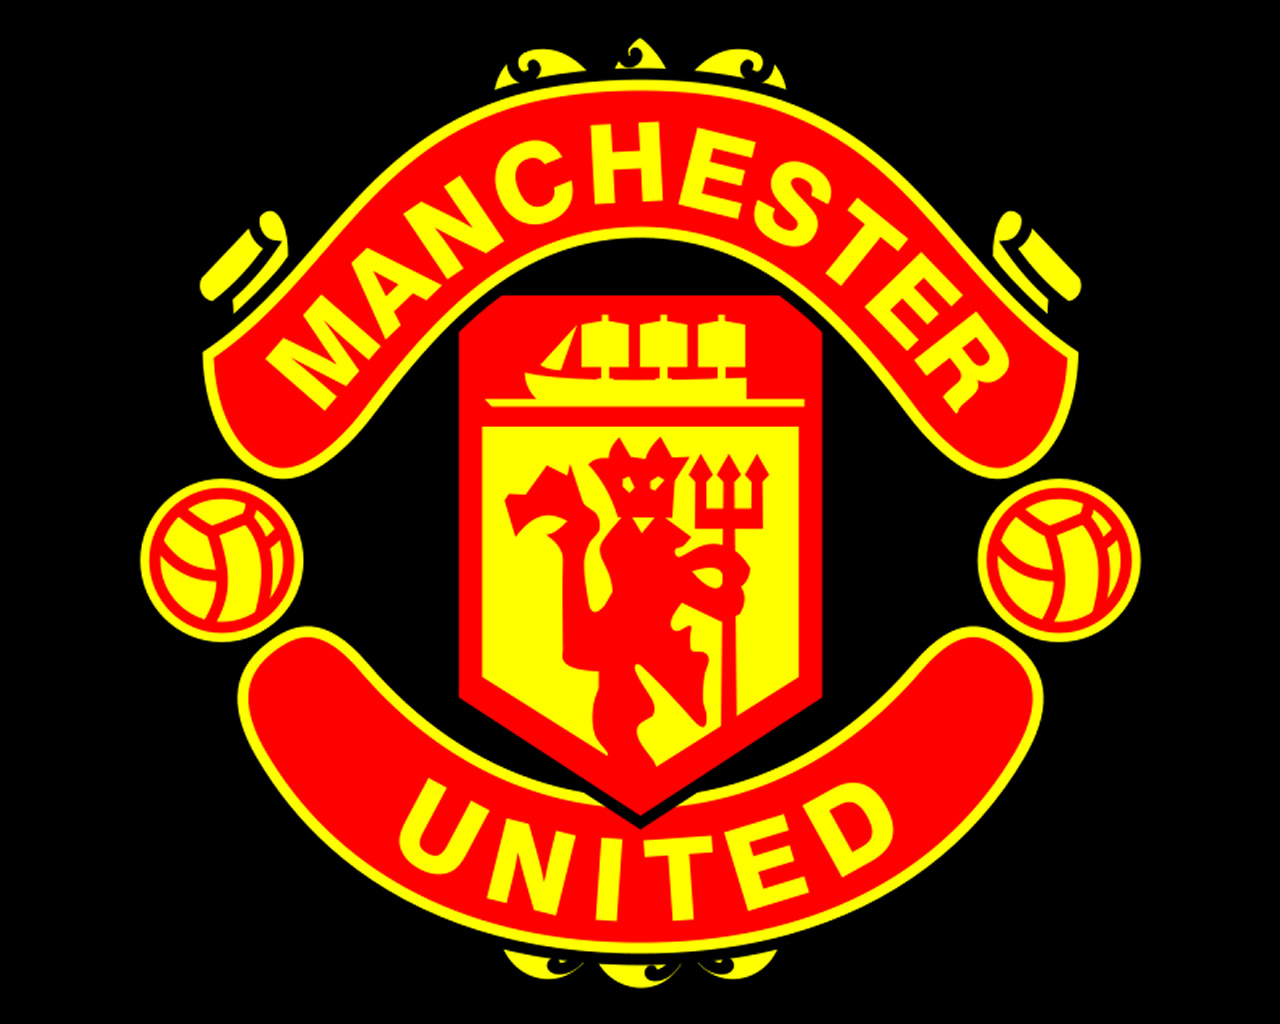 manchester united logo - wallpapers and images for mobile ...